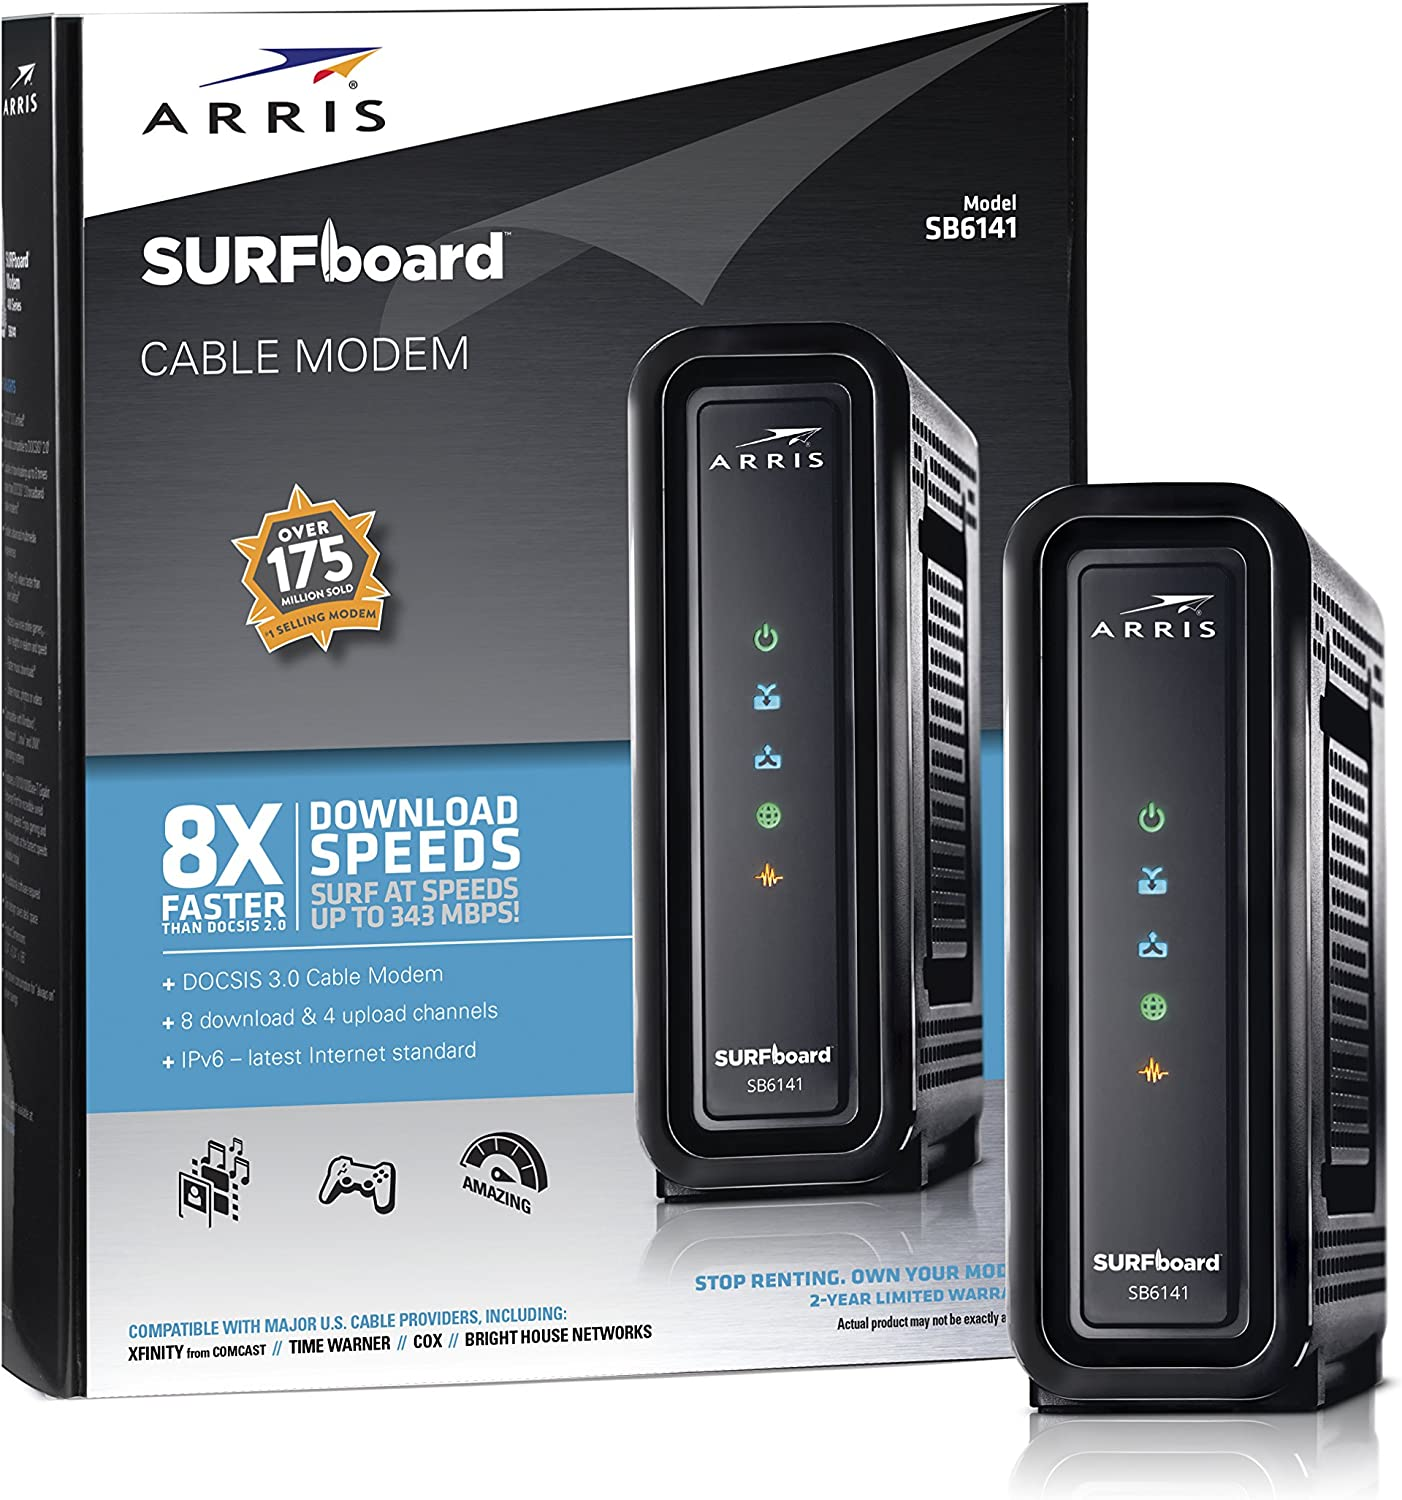 2. Arris Surfboard SB6141